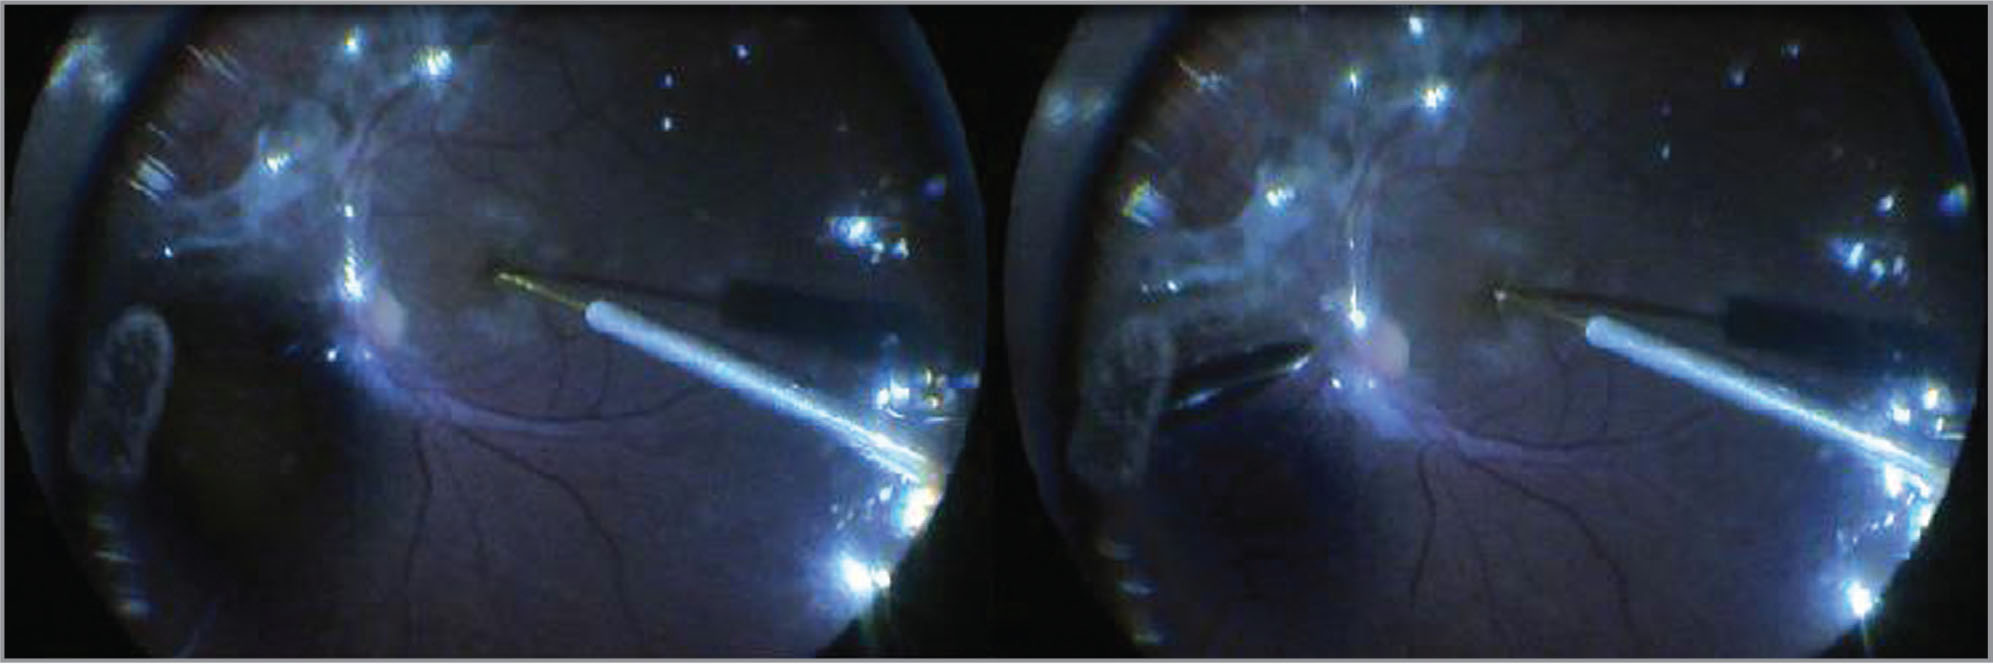 During the fluid-air exchange, 39-gauge cannula was placed just over the macular hole to drain submacular fluid.